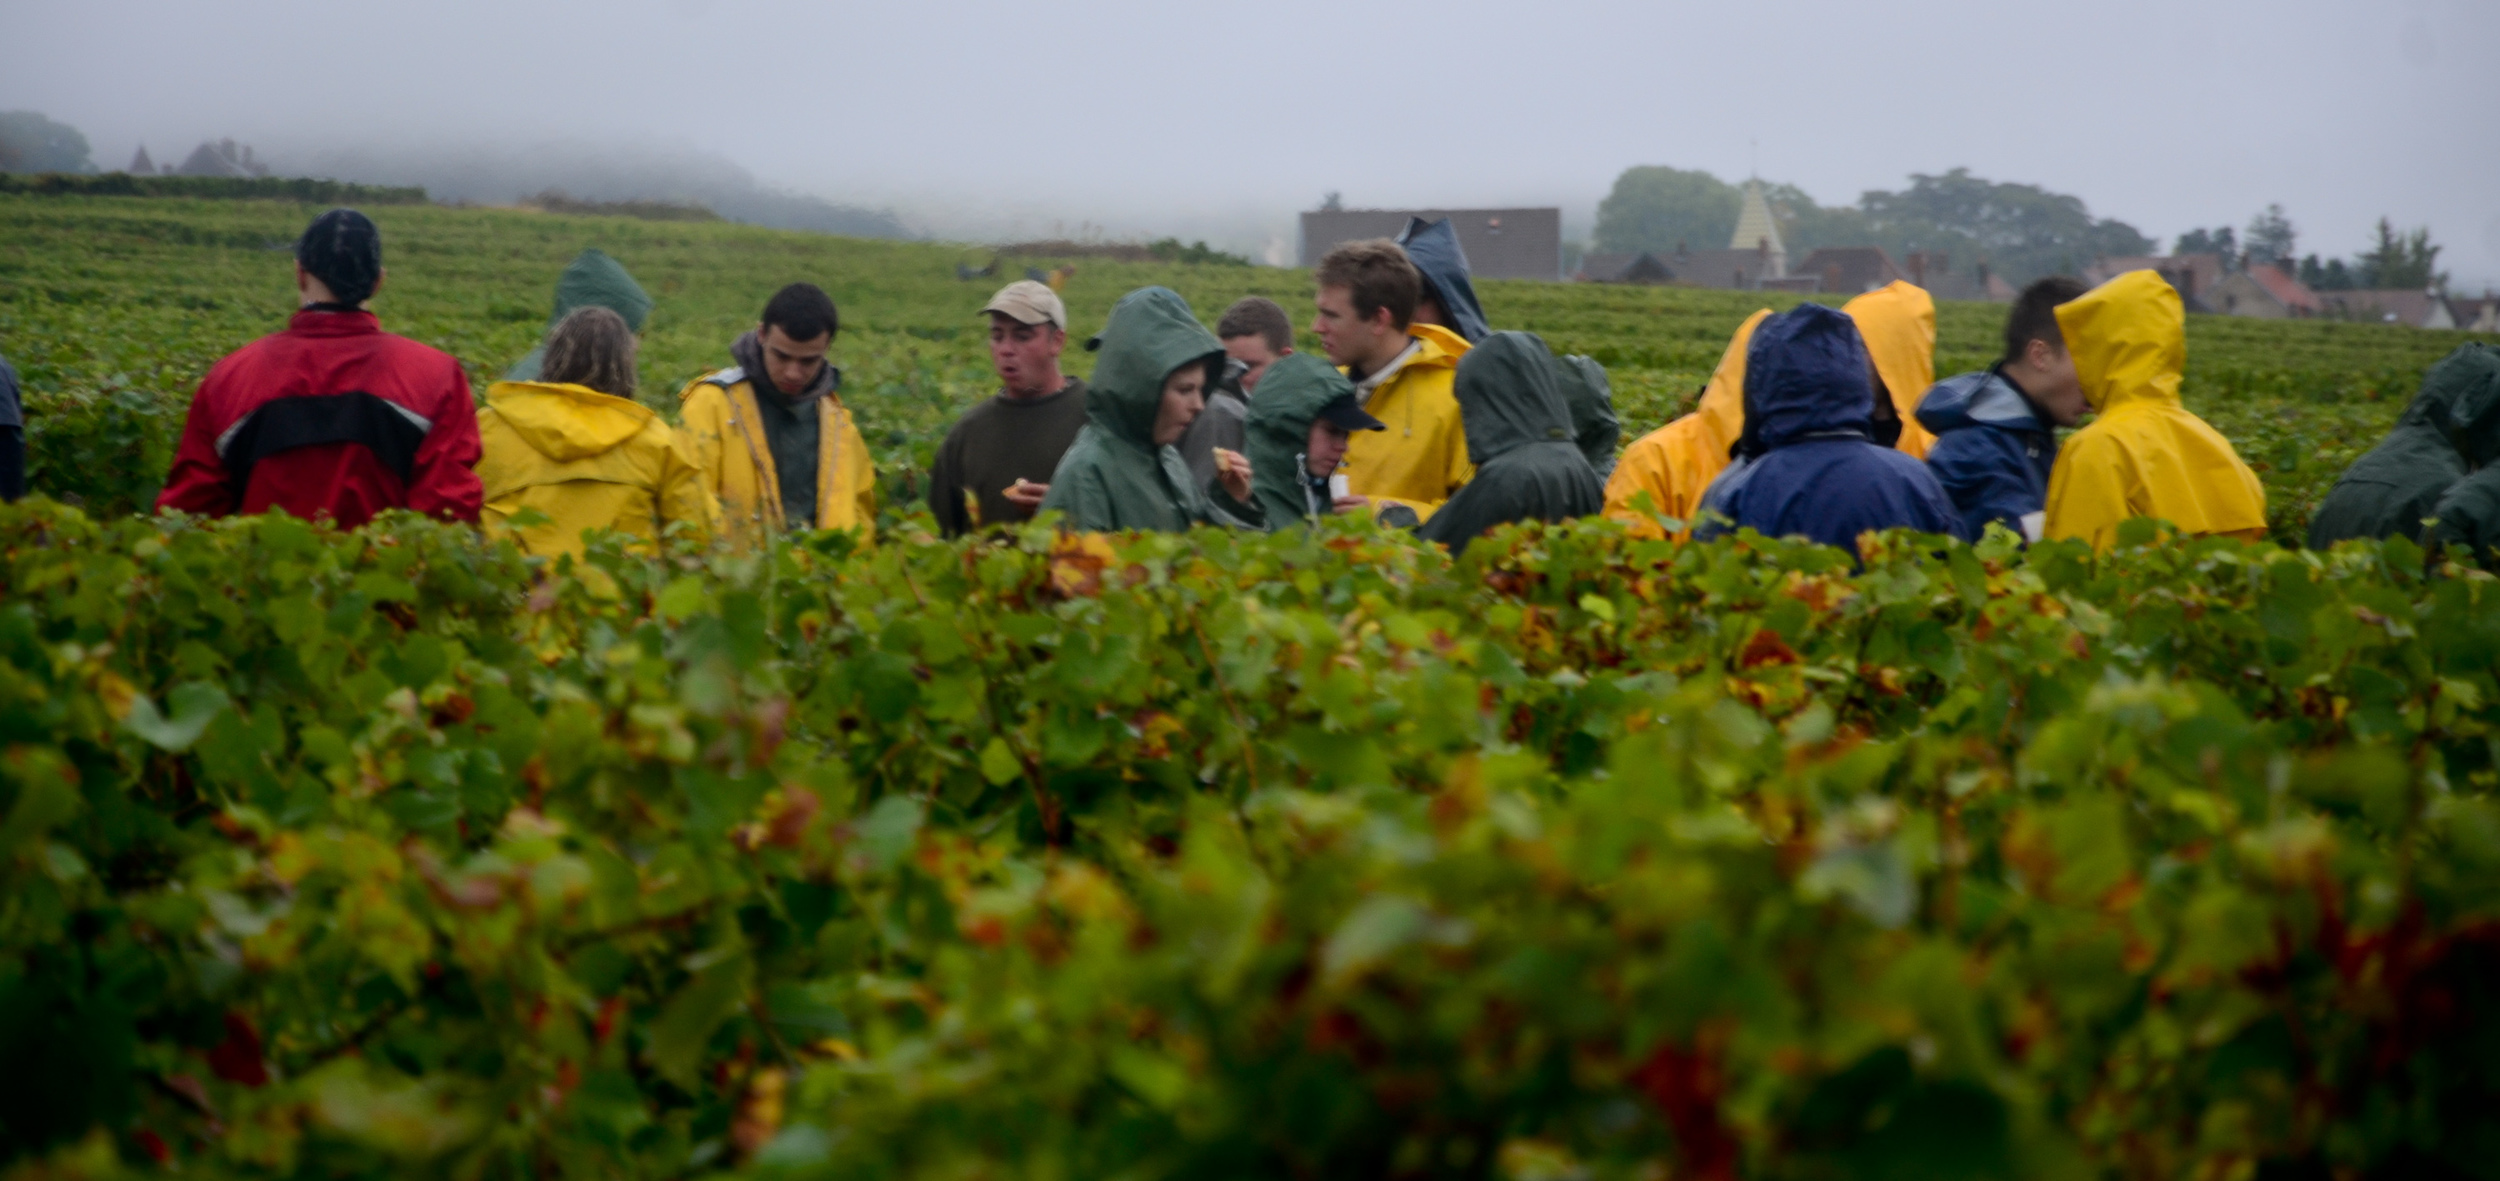 Hungry_Cyclist_Burgundy_Harvest12-46.jpg